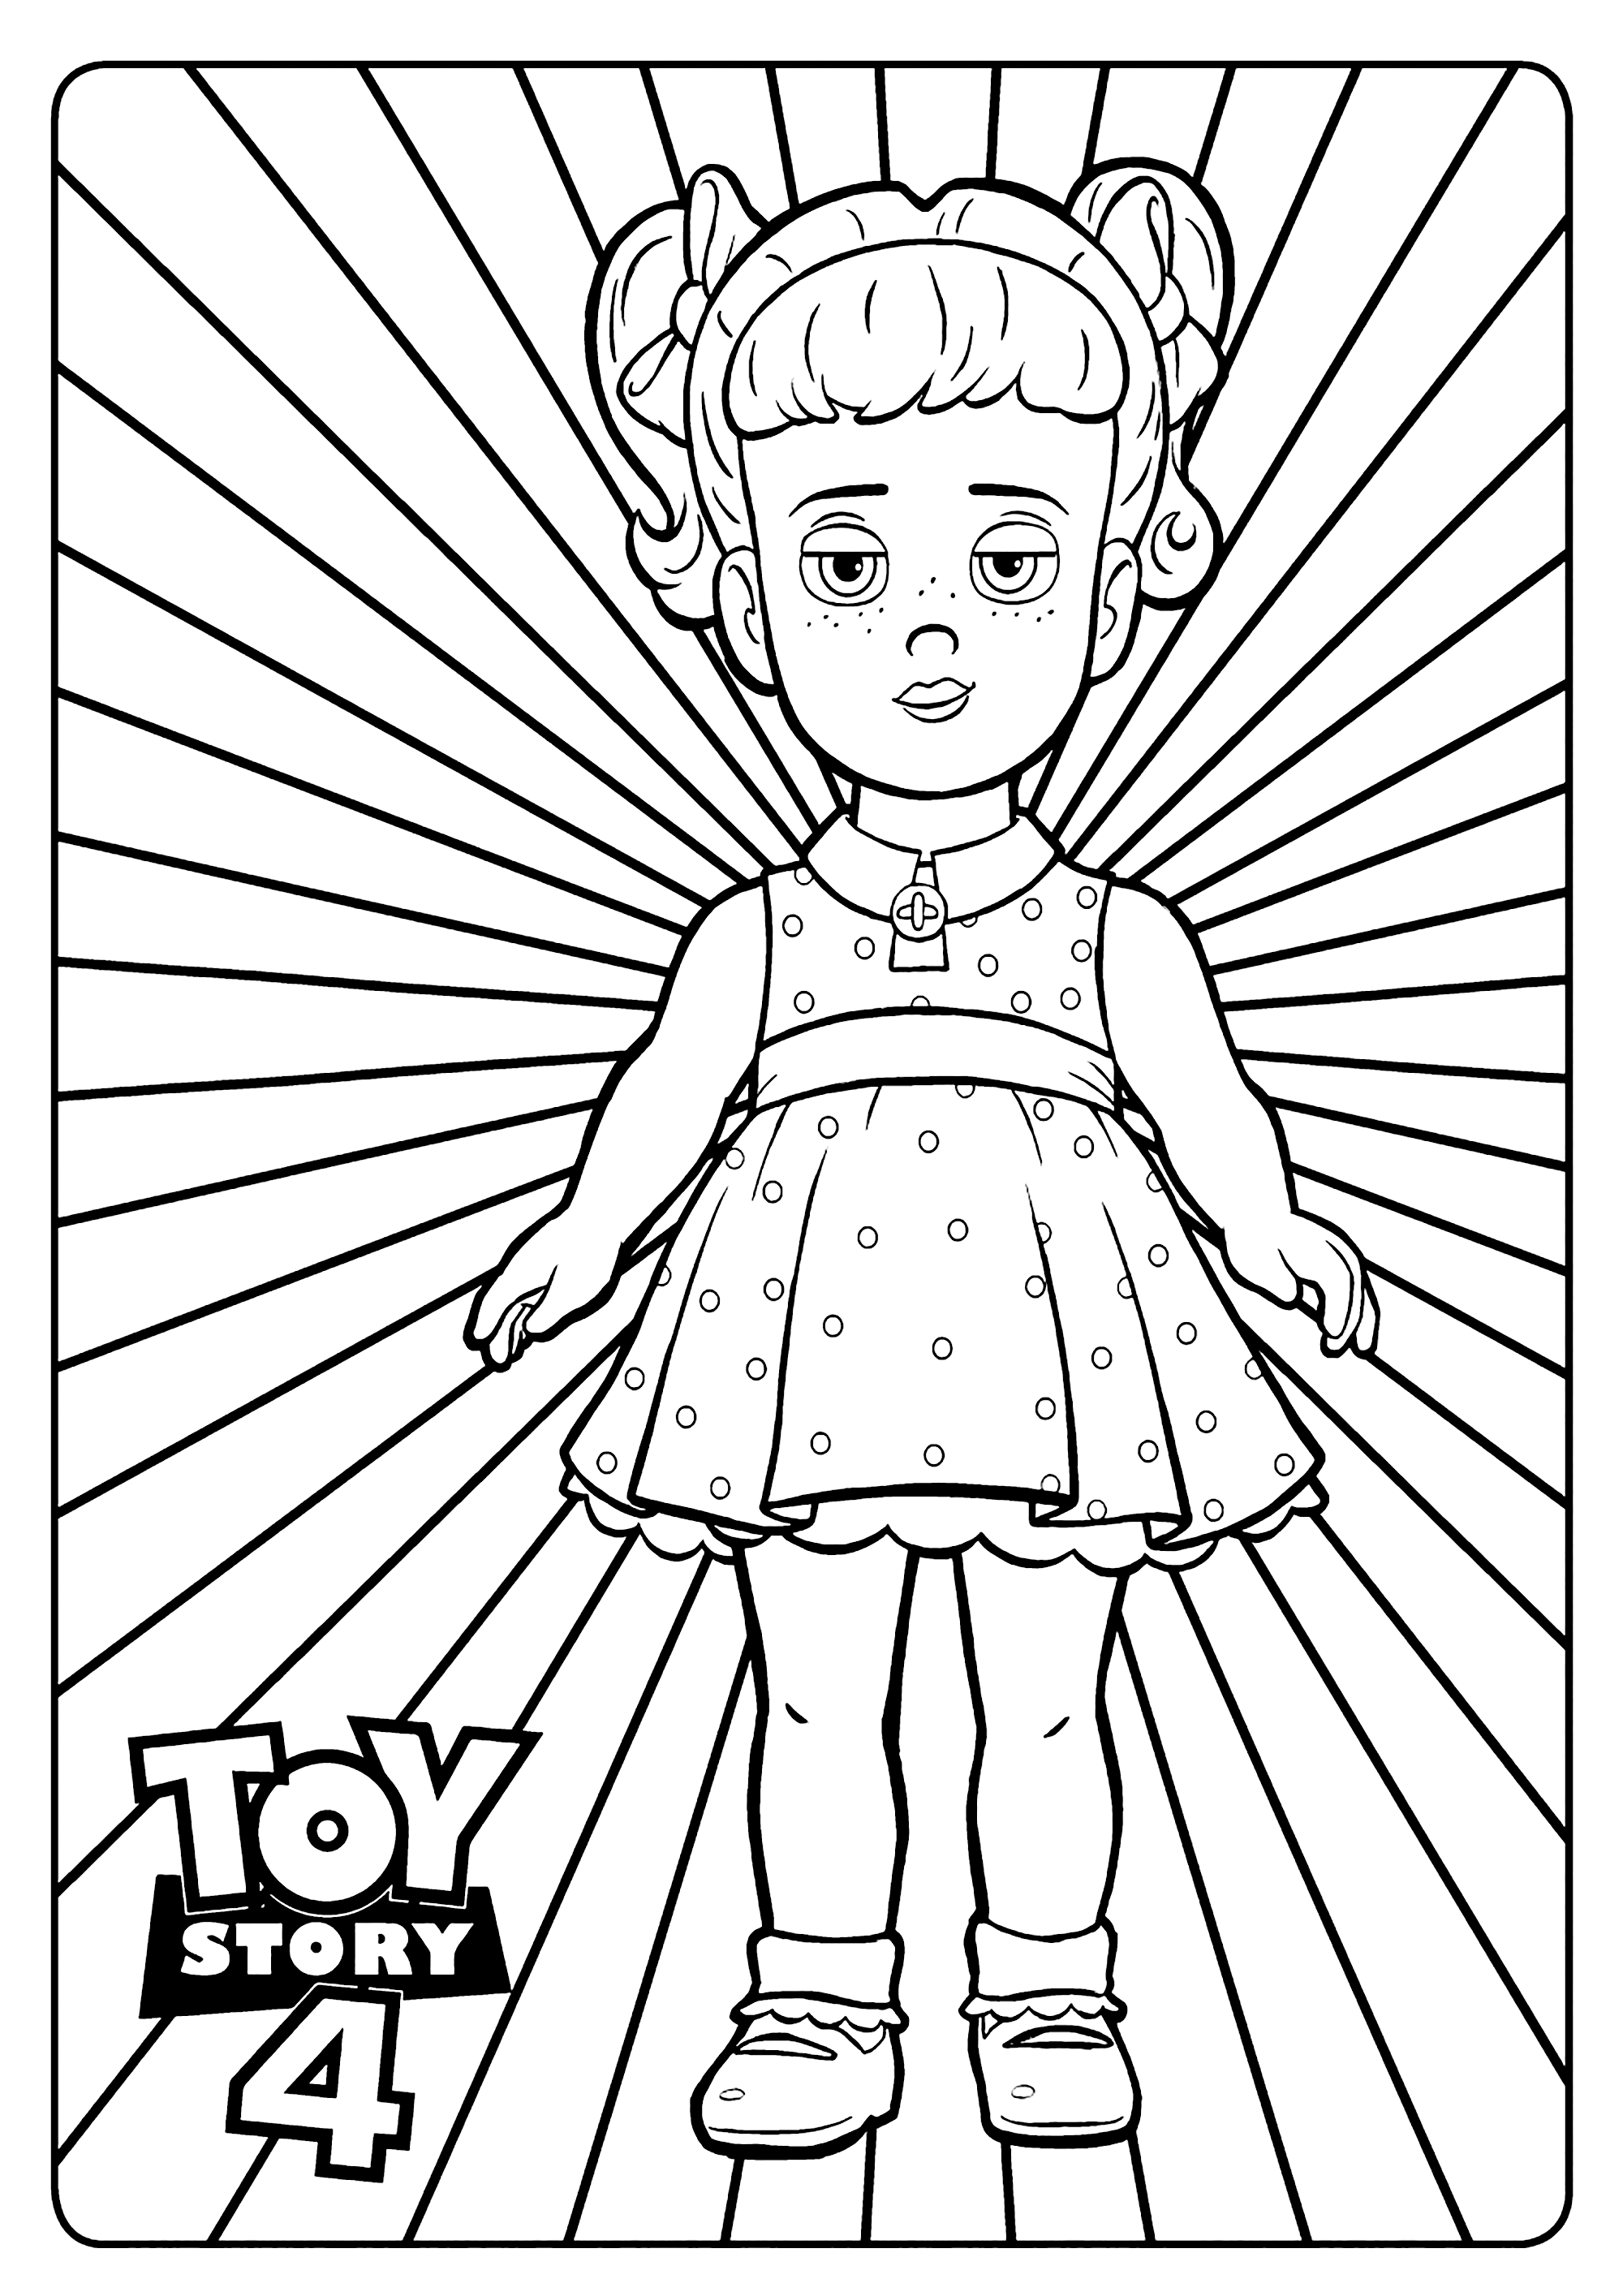 toy story 4 coloring page 18 free printable toy story 4 coloring pages 1nza 4 coloring story page toy